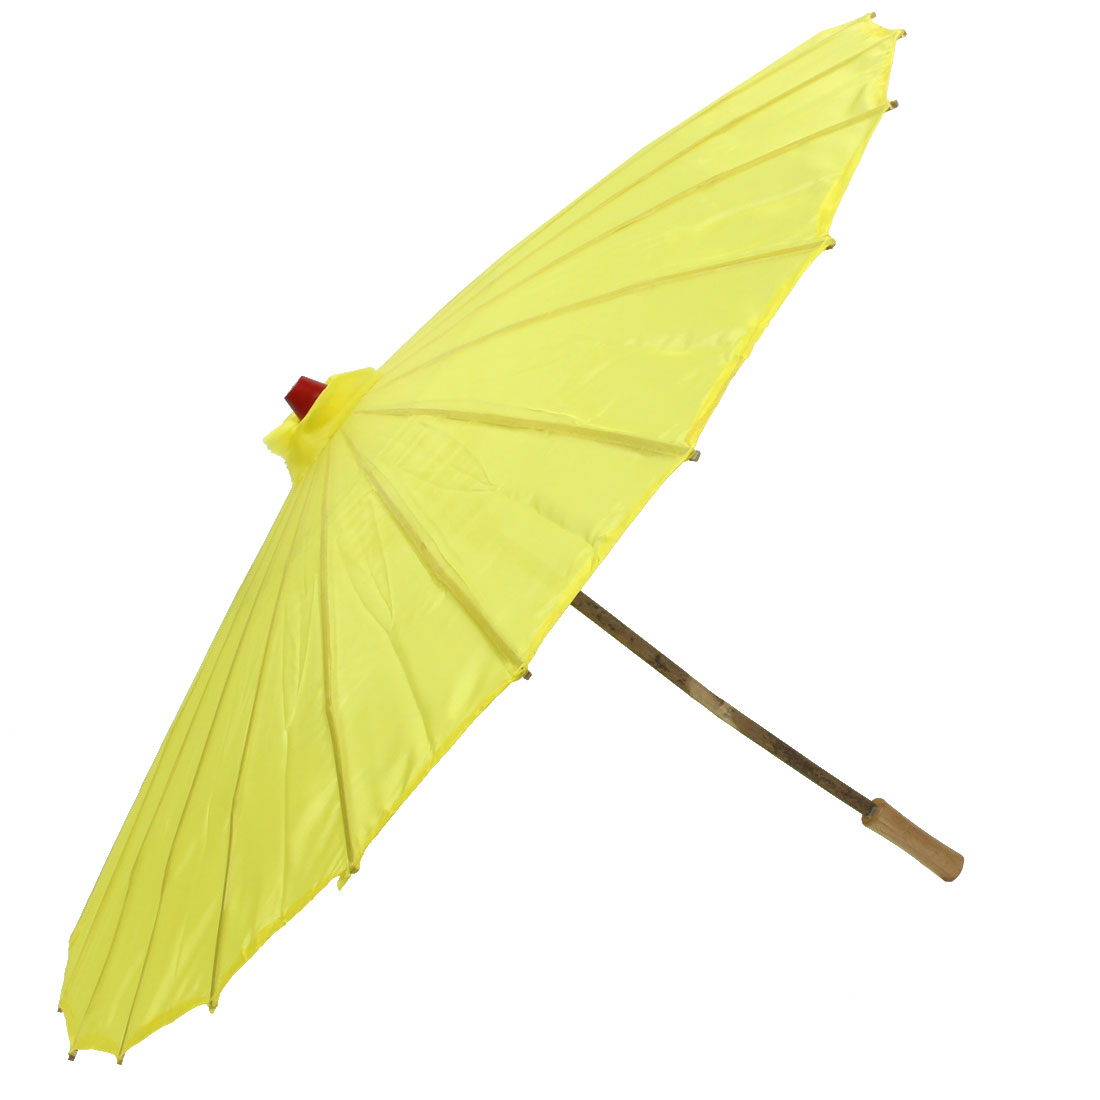 Bamboo Japanese Chinese Style Traditional Manually Dancing Umbrella Parasol Yellow 78cm Dia